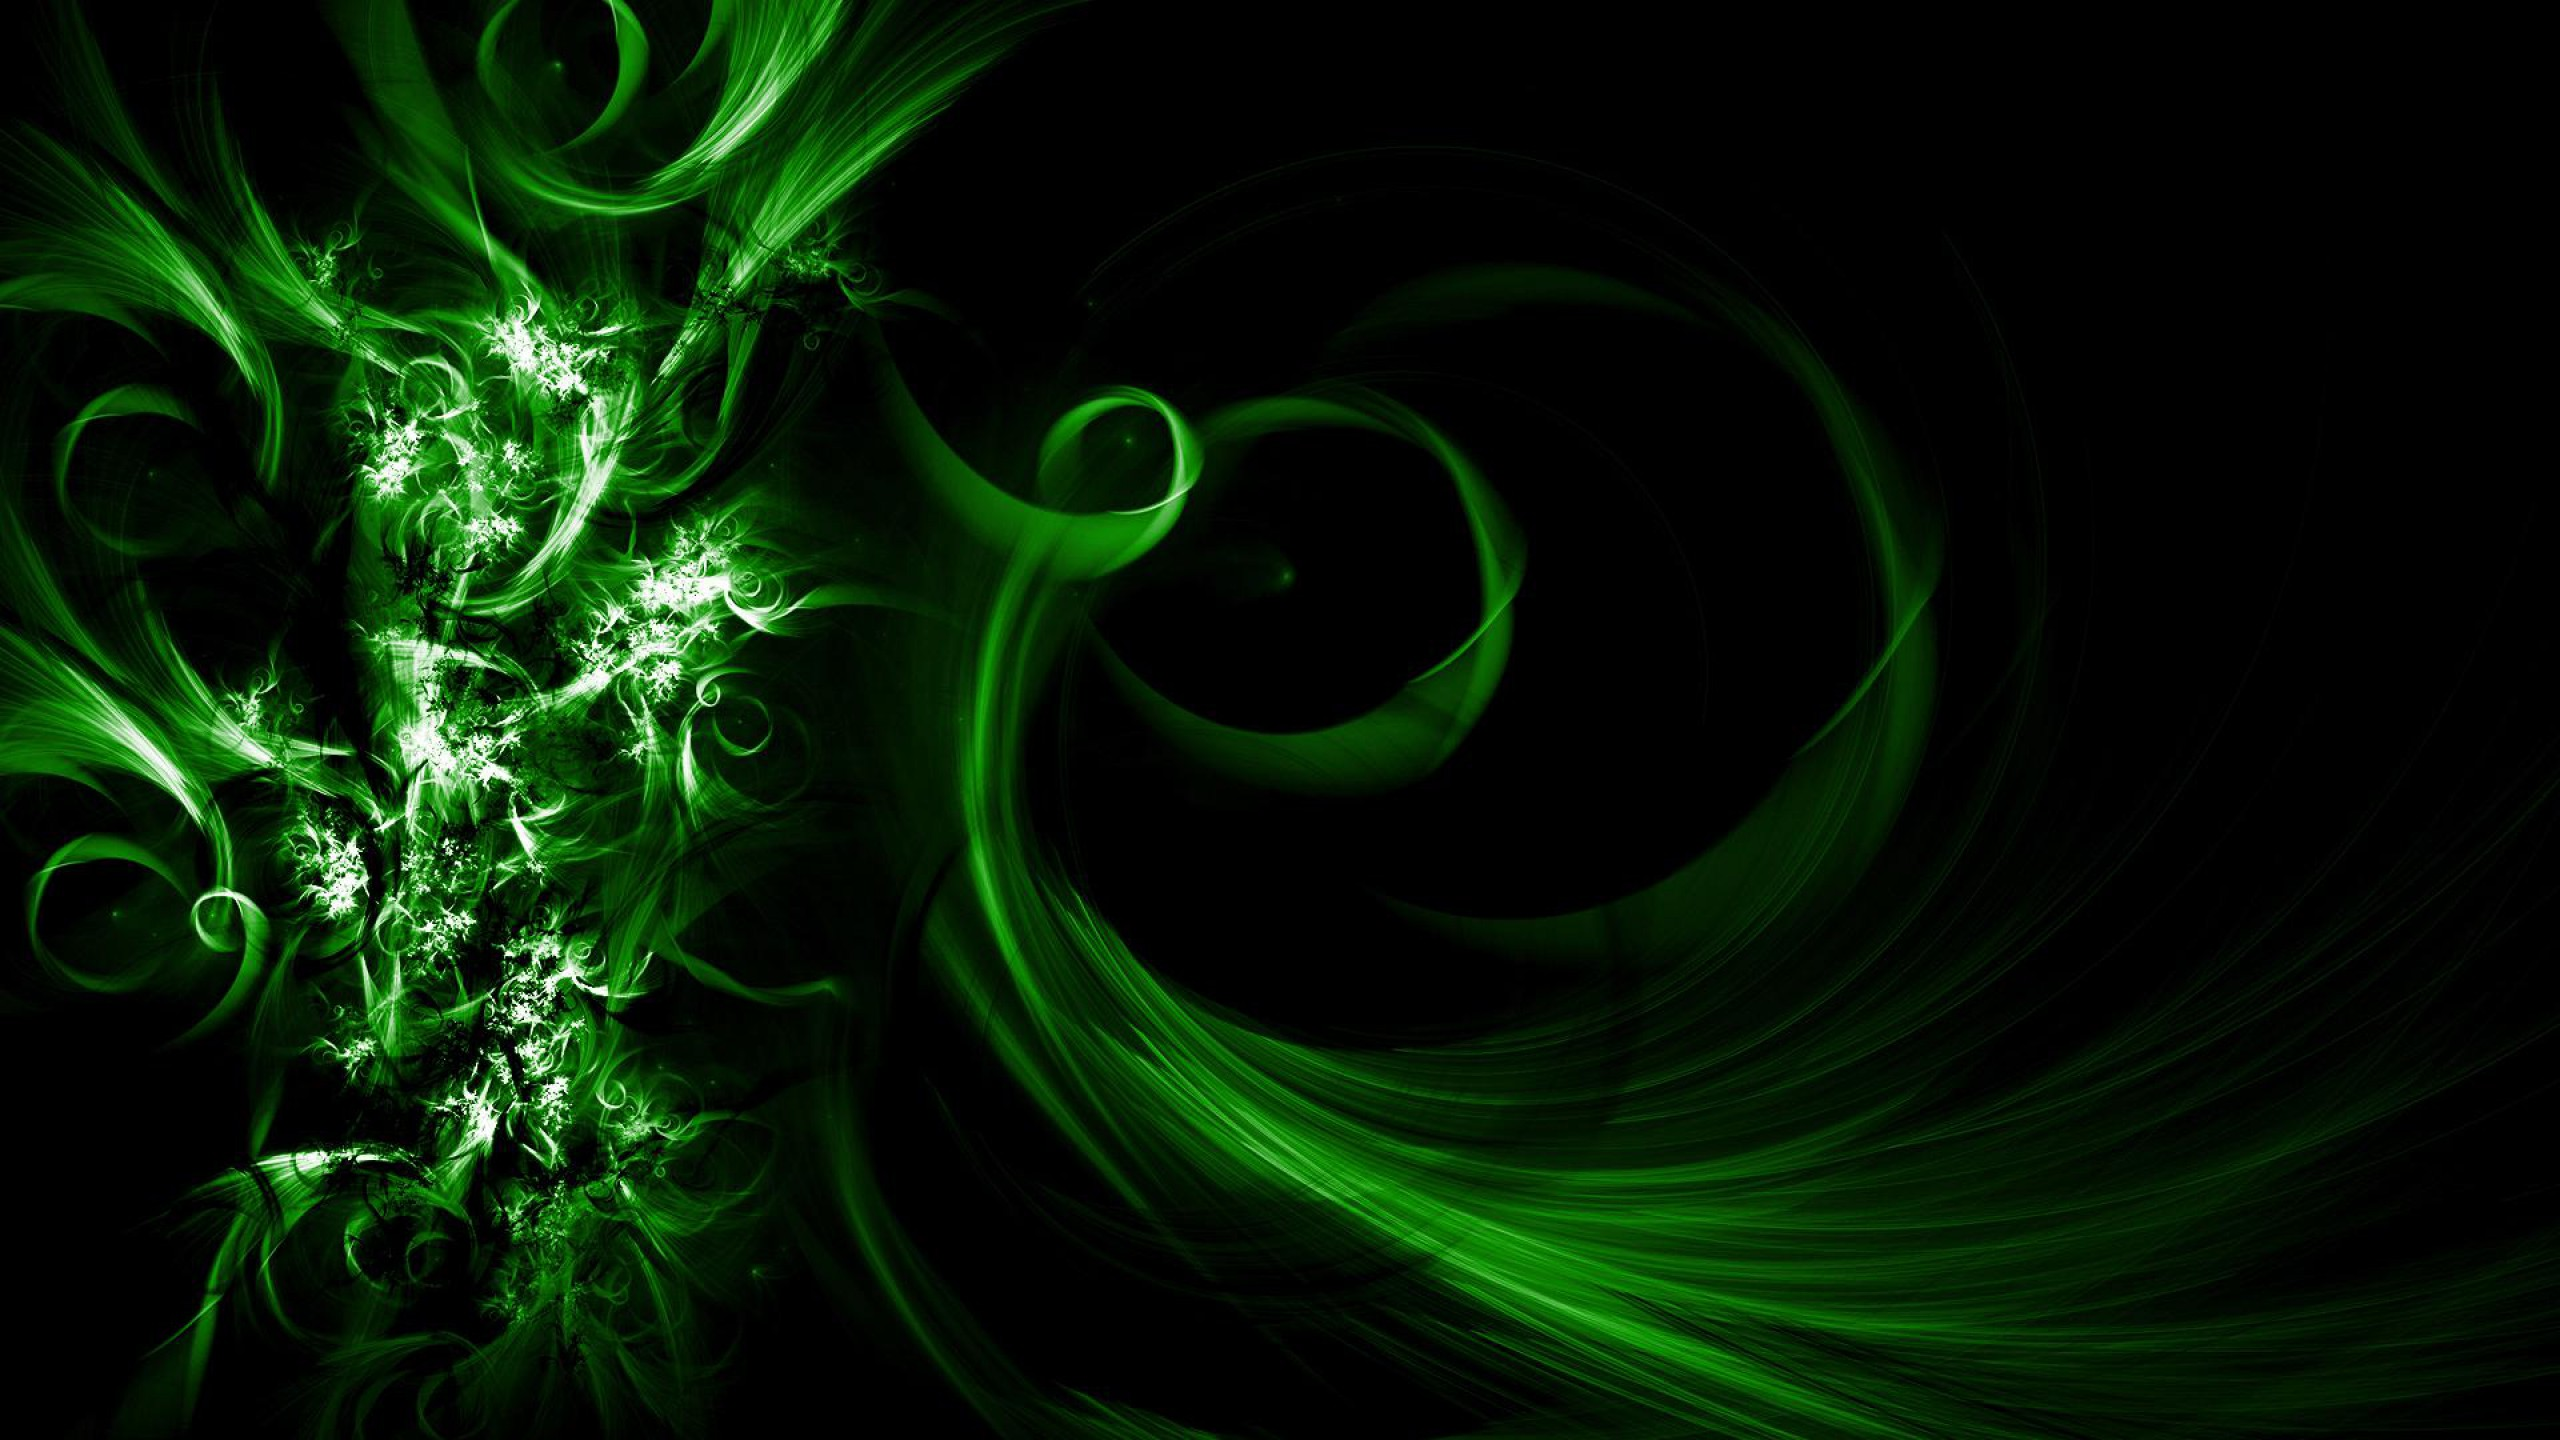 Cool Abstract Wallpapers HD 2560x1440